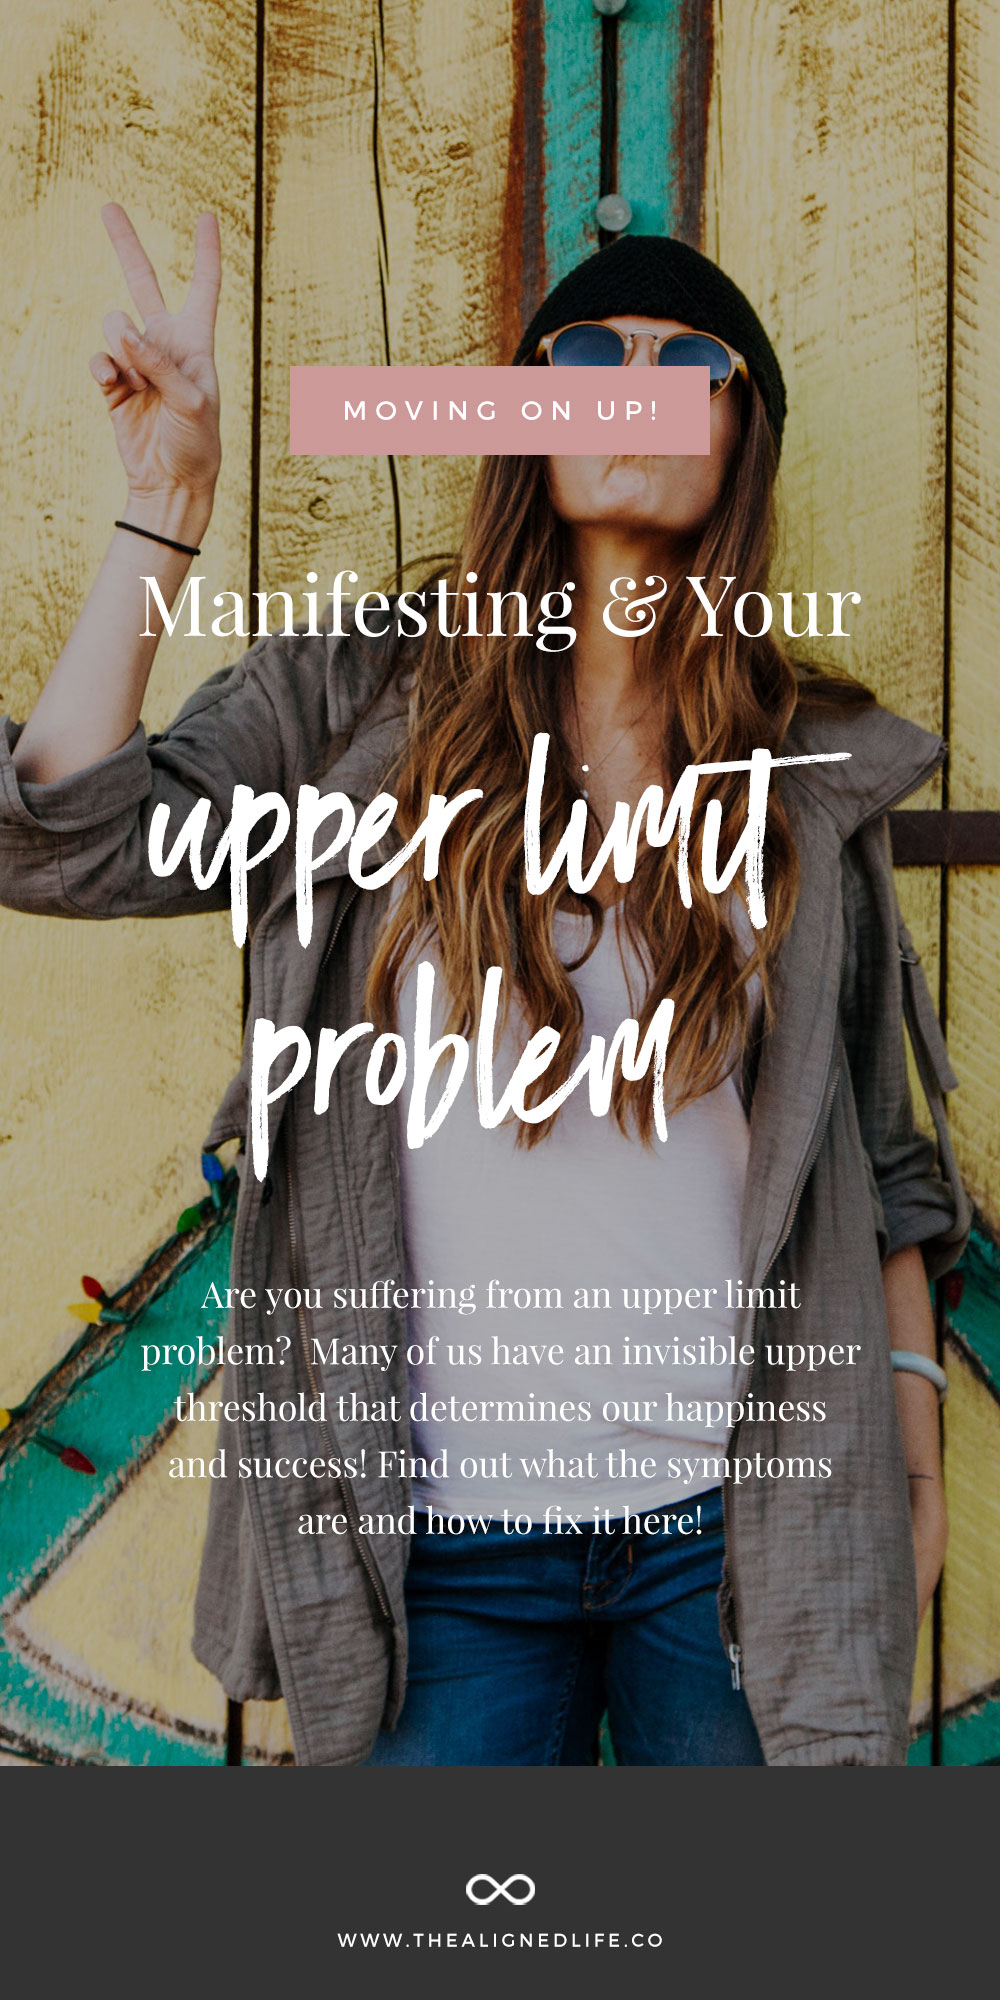 Moving On Up: Manifesting & Your Upper Limit Problem